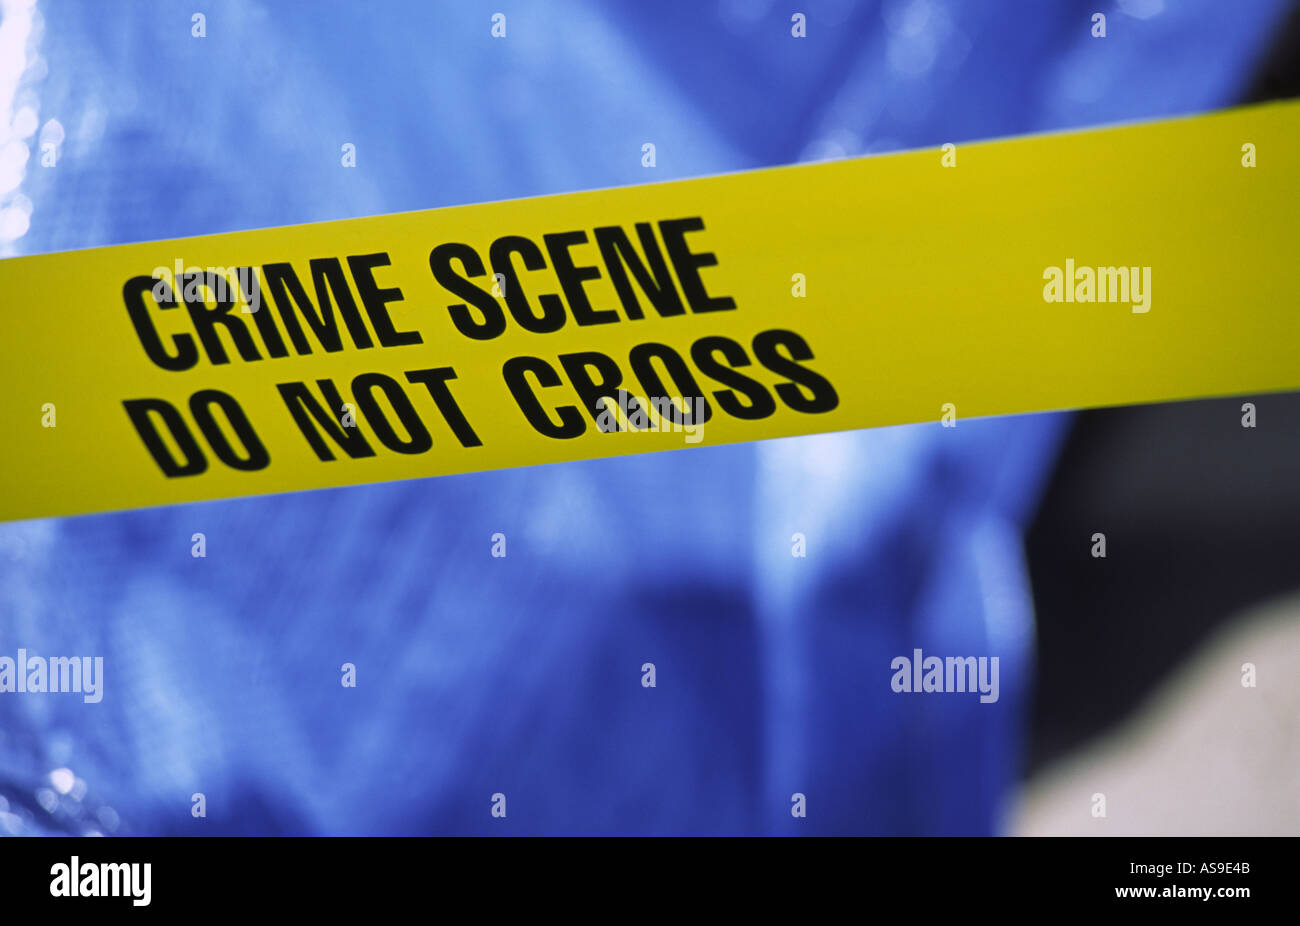 crime scene taped off with yellow police crime scene tape - Stock Image